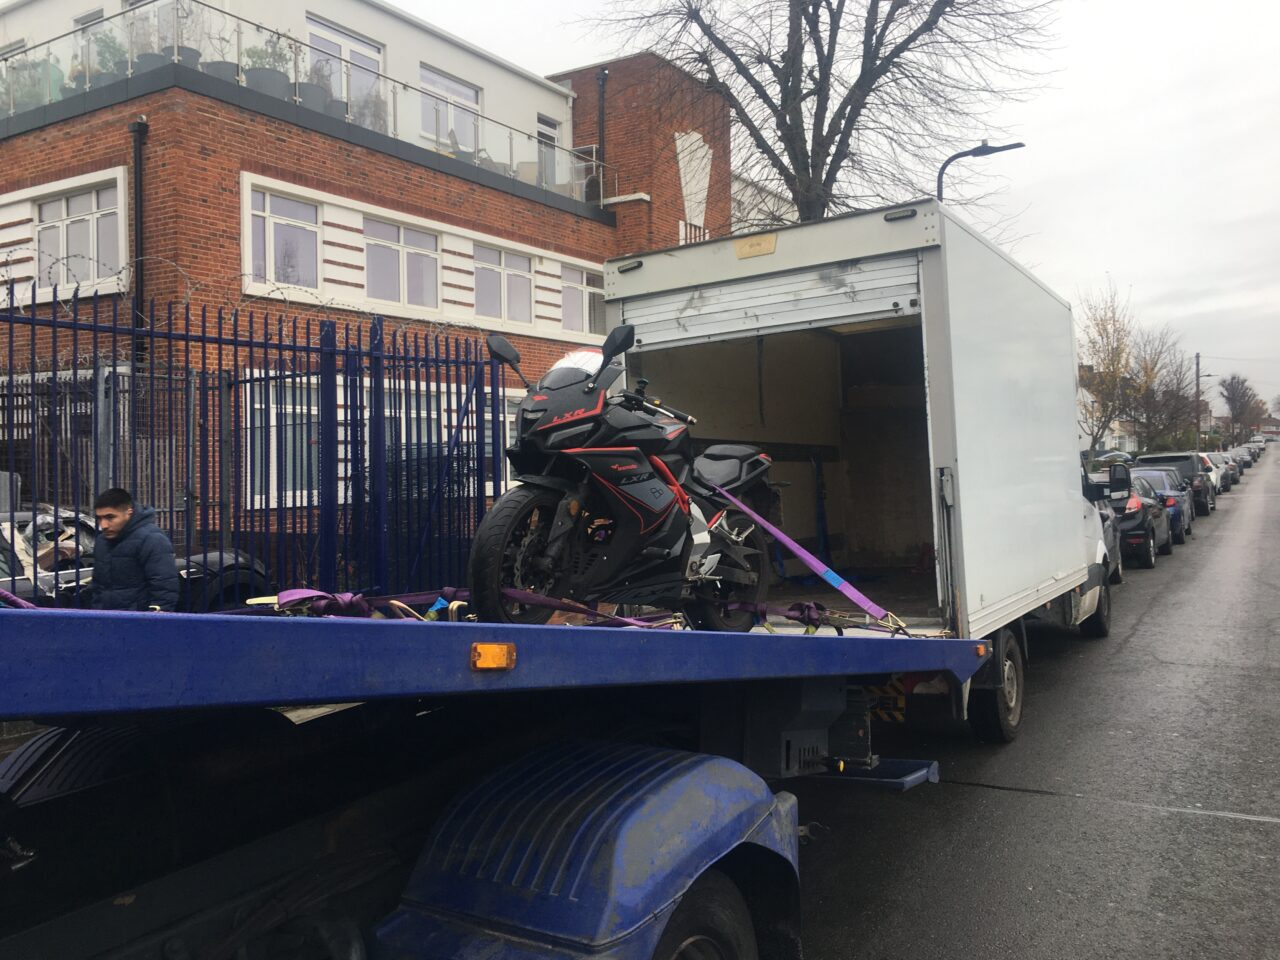 MOTOR BIKE RECOVERY SERVICES